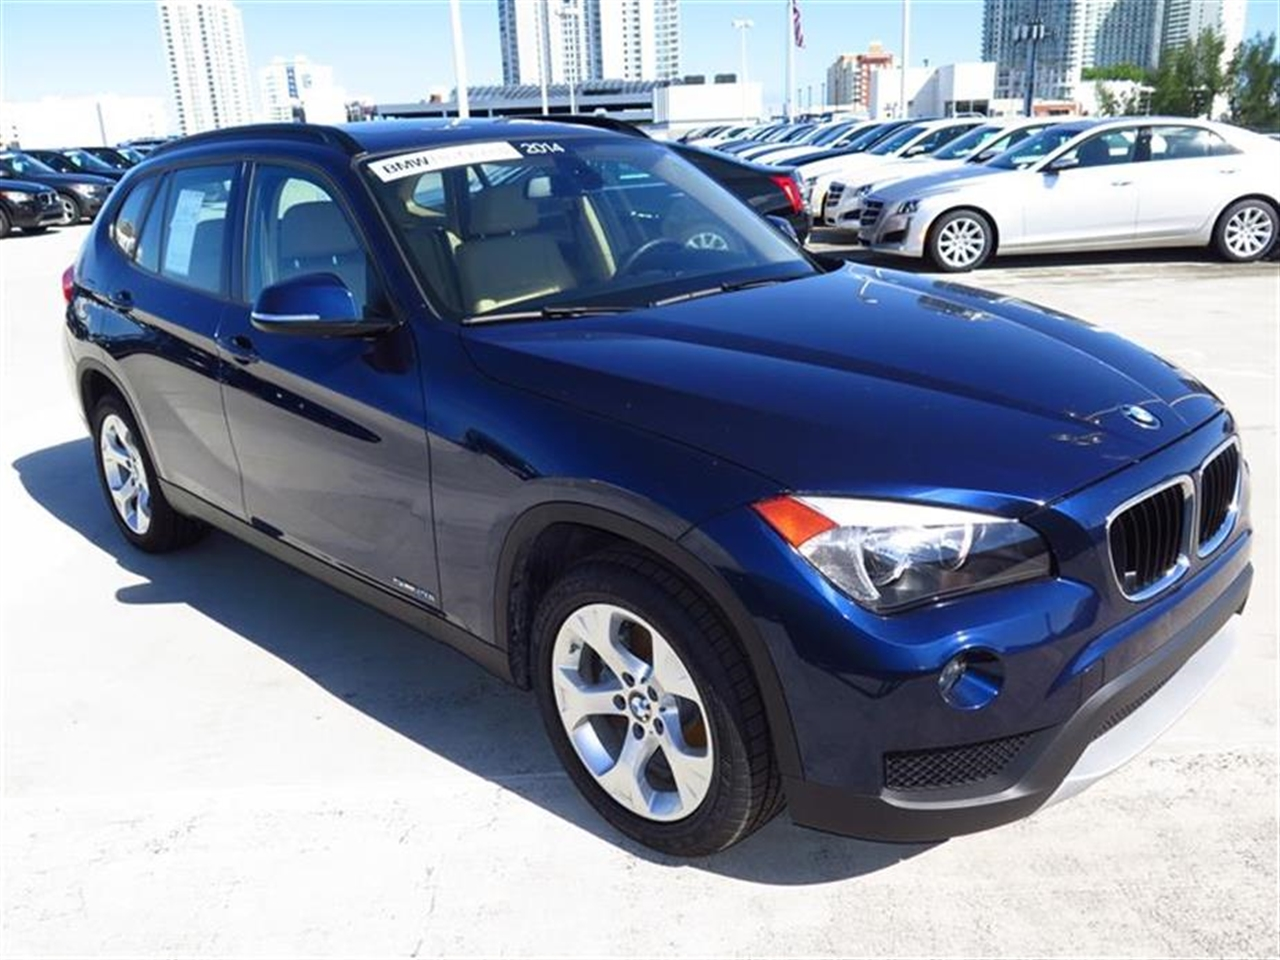 2014 BMW X1 RWD 4dr sDrive28i 4749 miles 2 Seatback Storage Pockets 3 12V DC Power Outlets LEATH